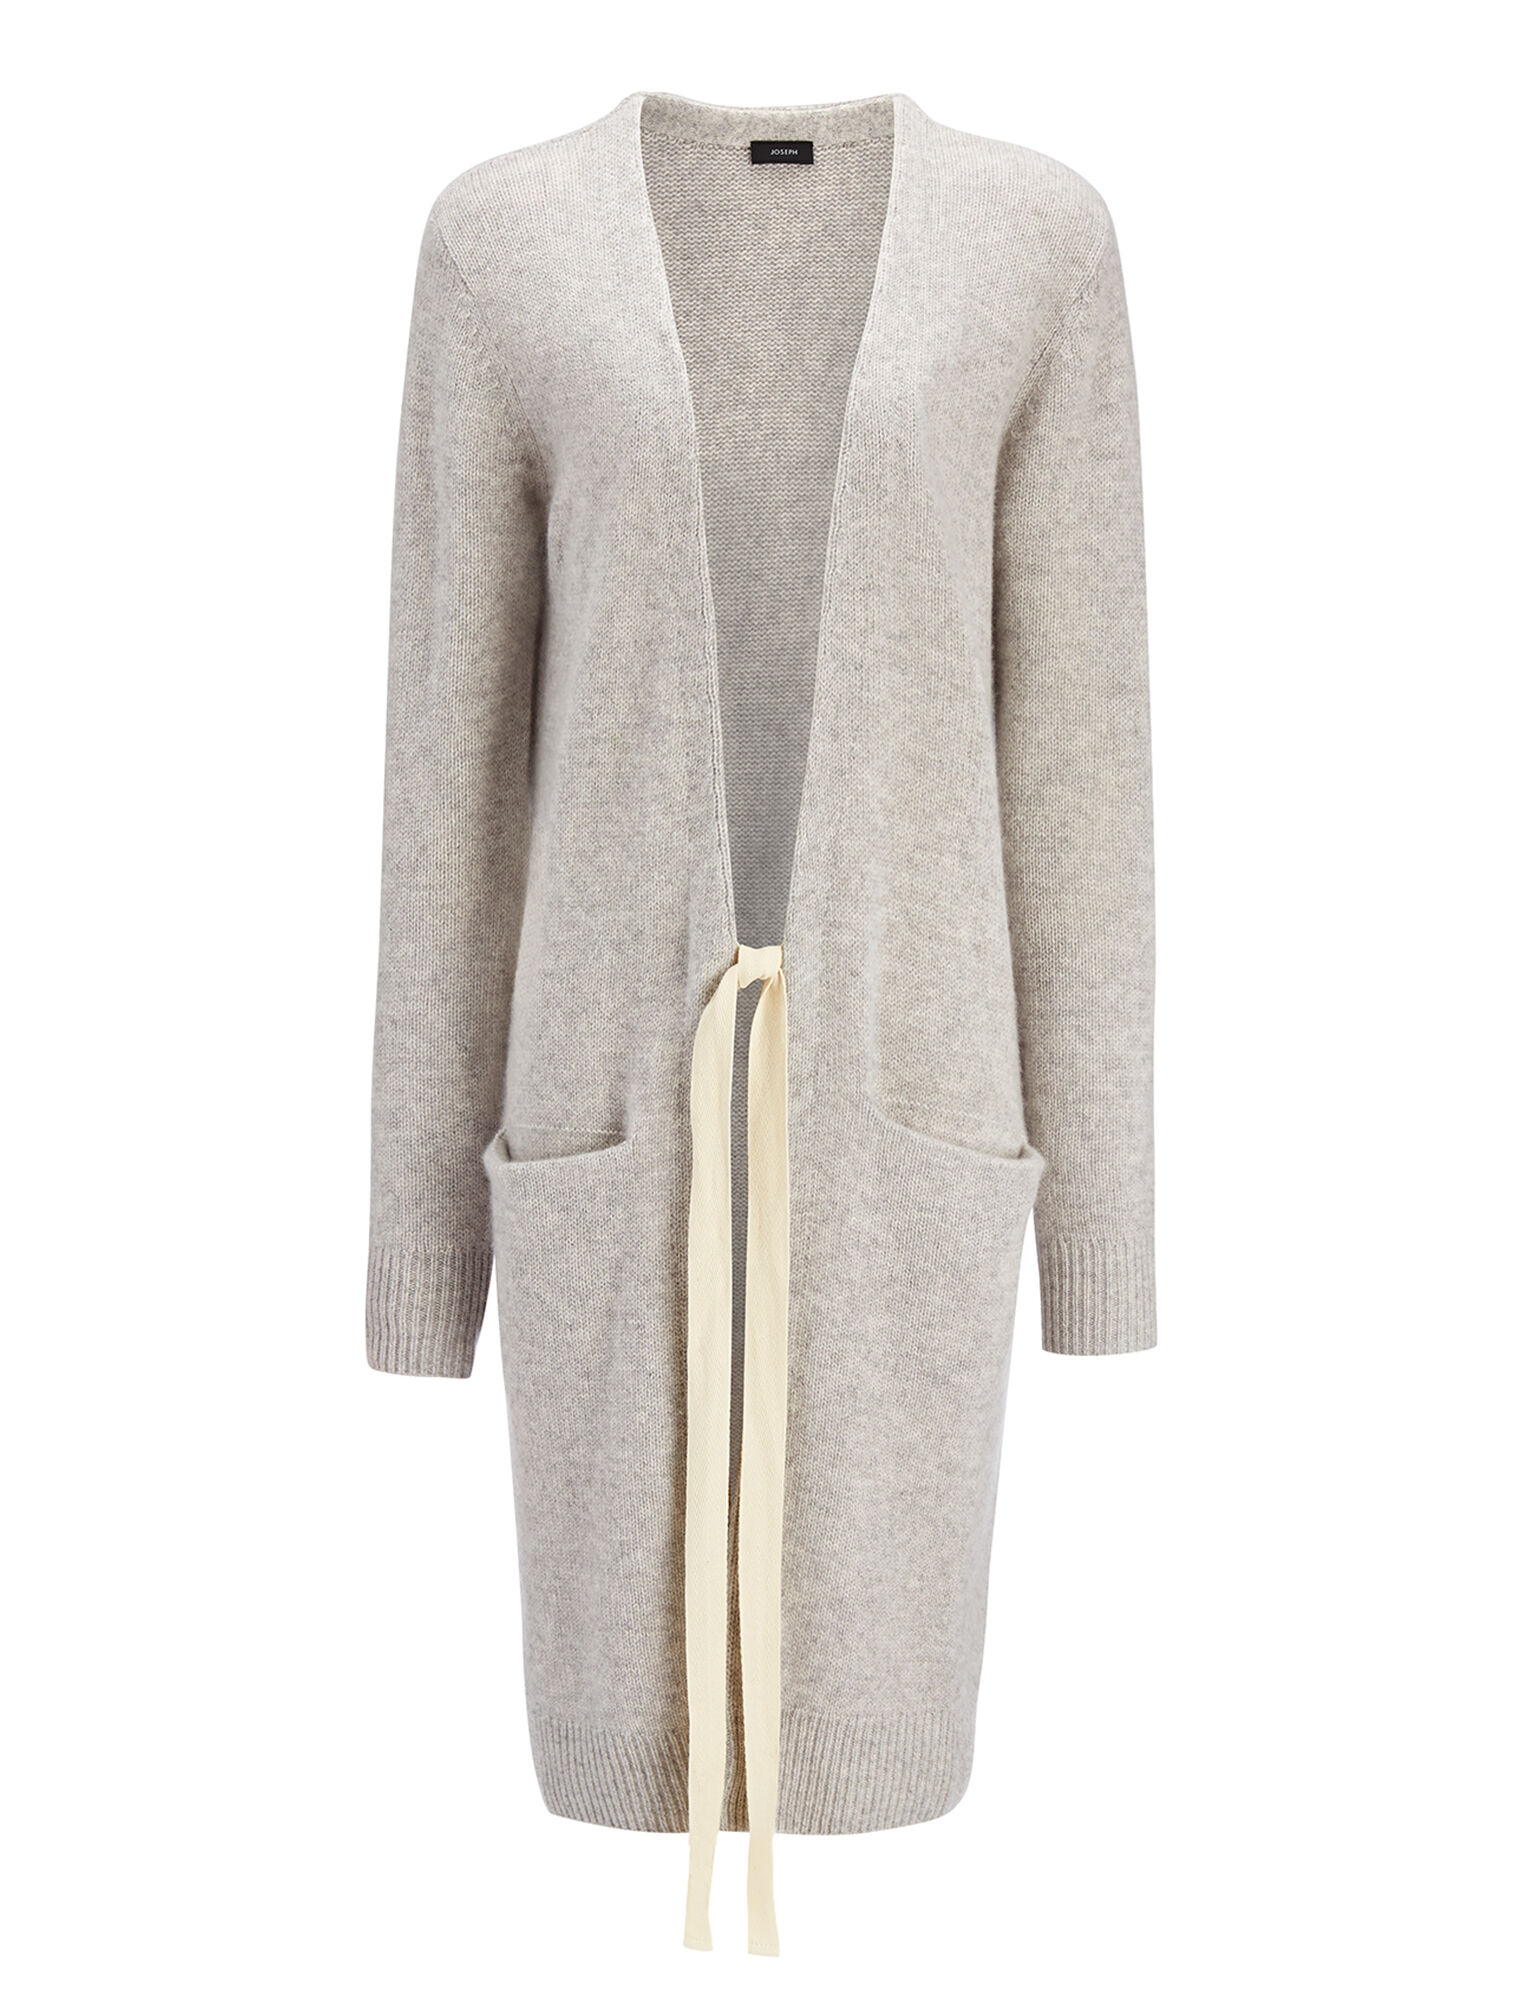 Open Cashmere Long Cardigan in Grey | JOSEPH